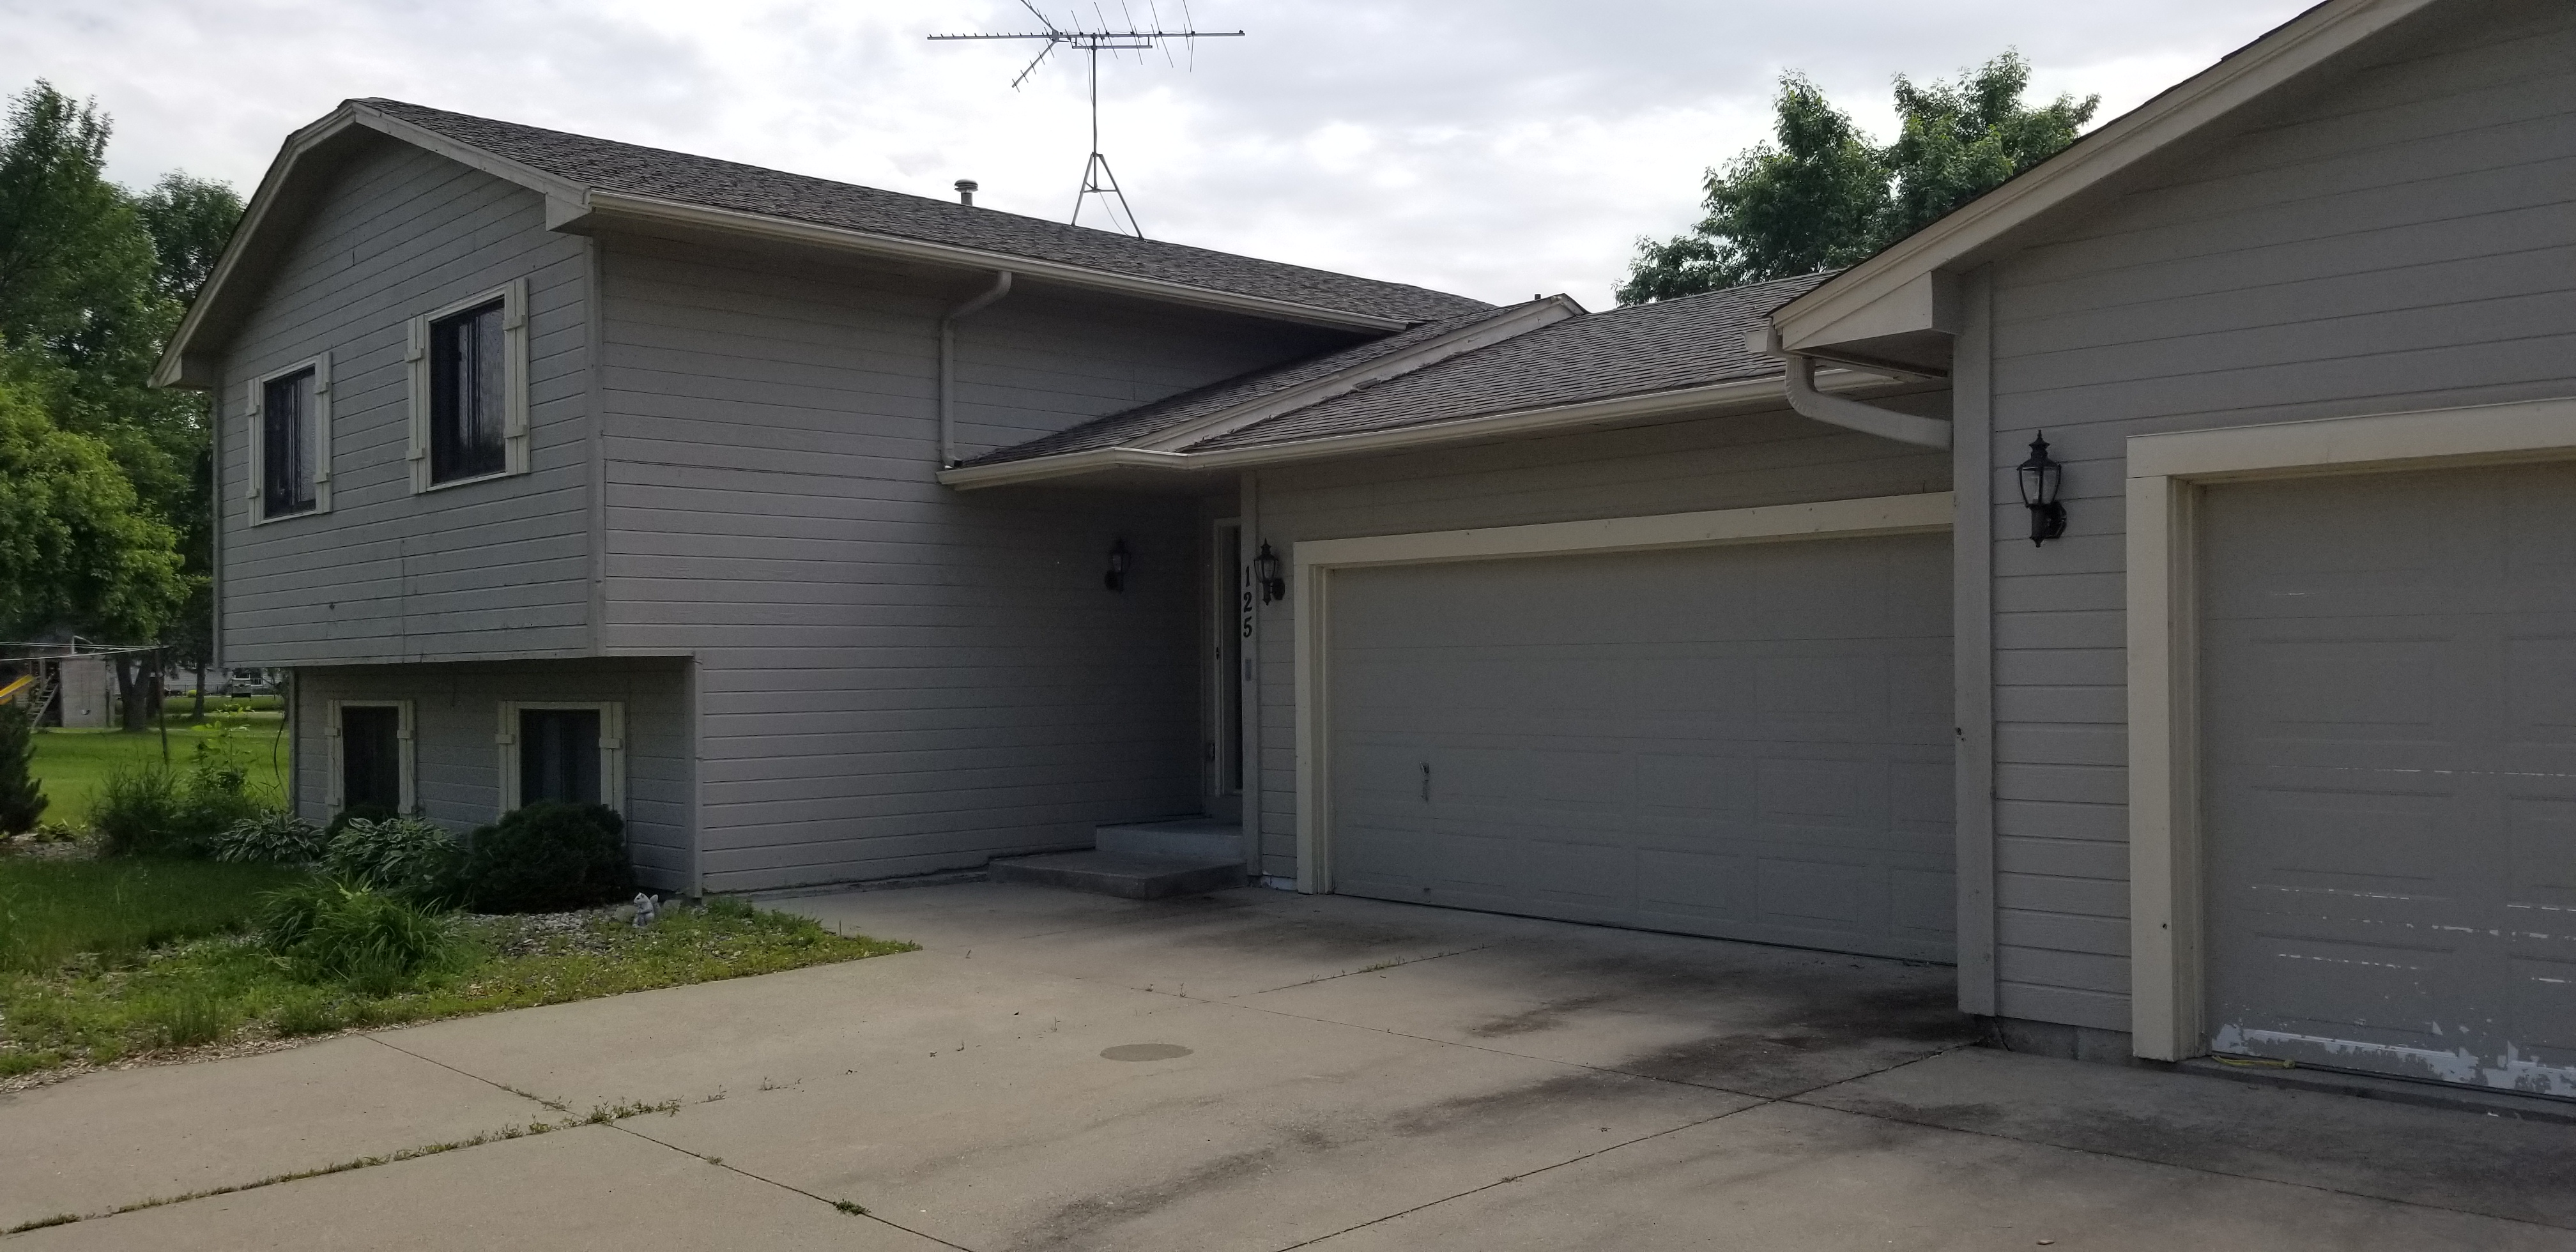 125 8th Ave NW, Lonsdale, MN